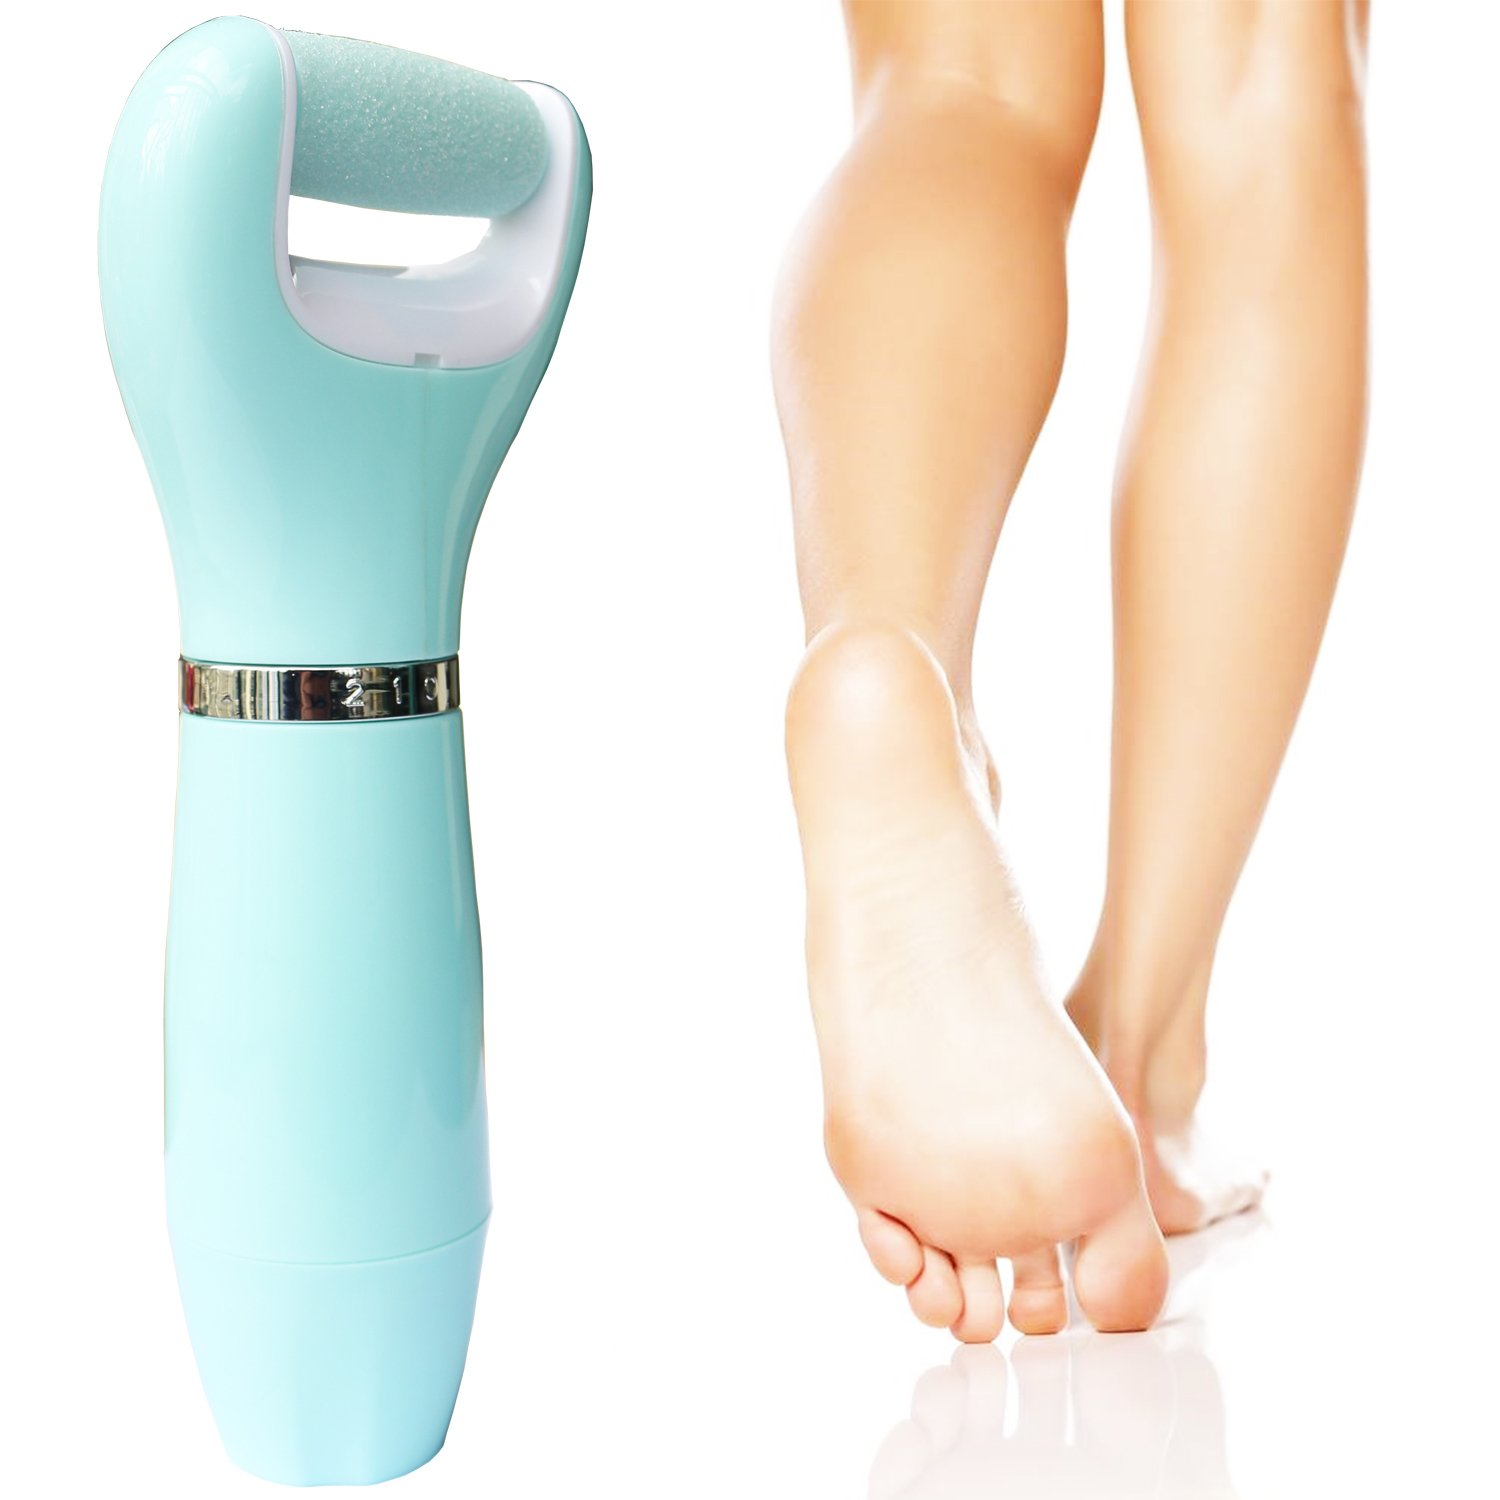 Stalong Electric Callus Remover Foot File Pedi shaver Pedicure Set Shaves Calluses Dead Hard Skin On Dry Feet 2 Mineral Pumice Stone Rollers Good for Man & Woman Batteries Powered Light Blue